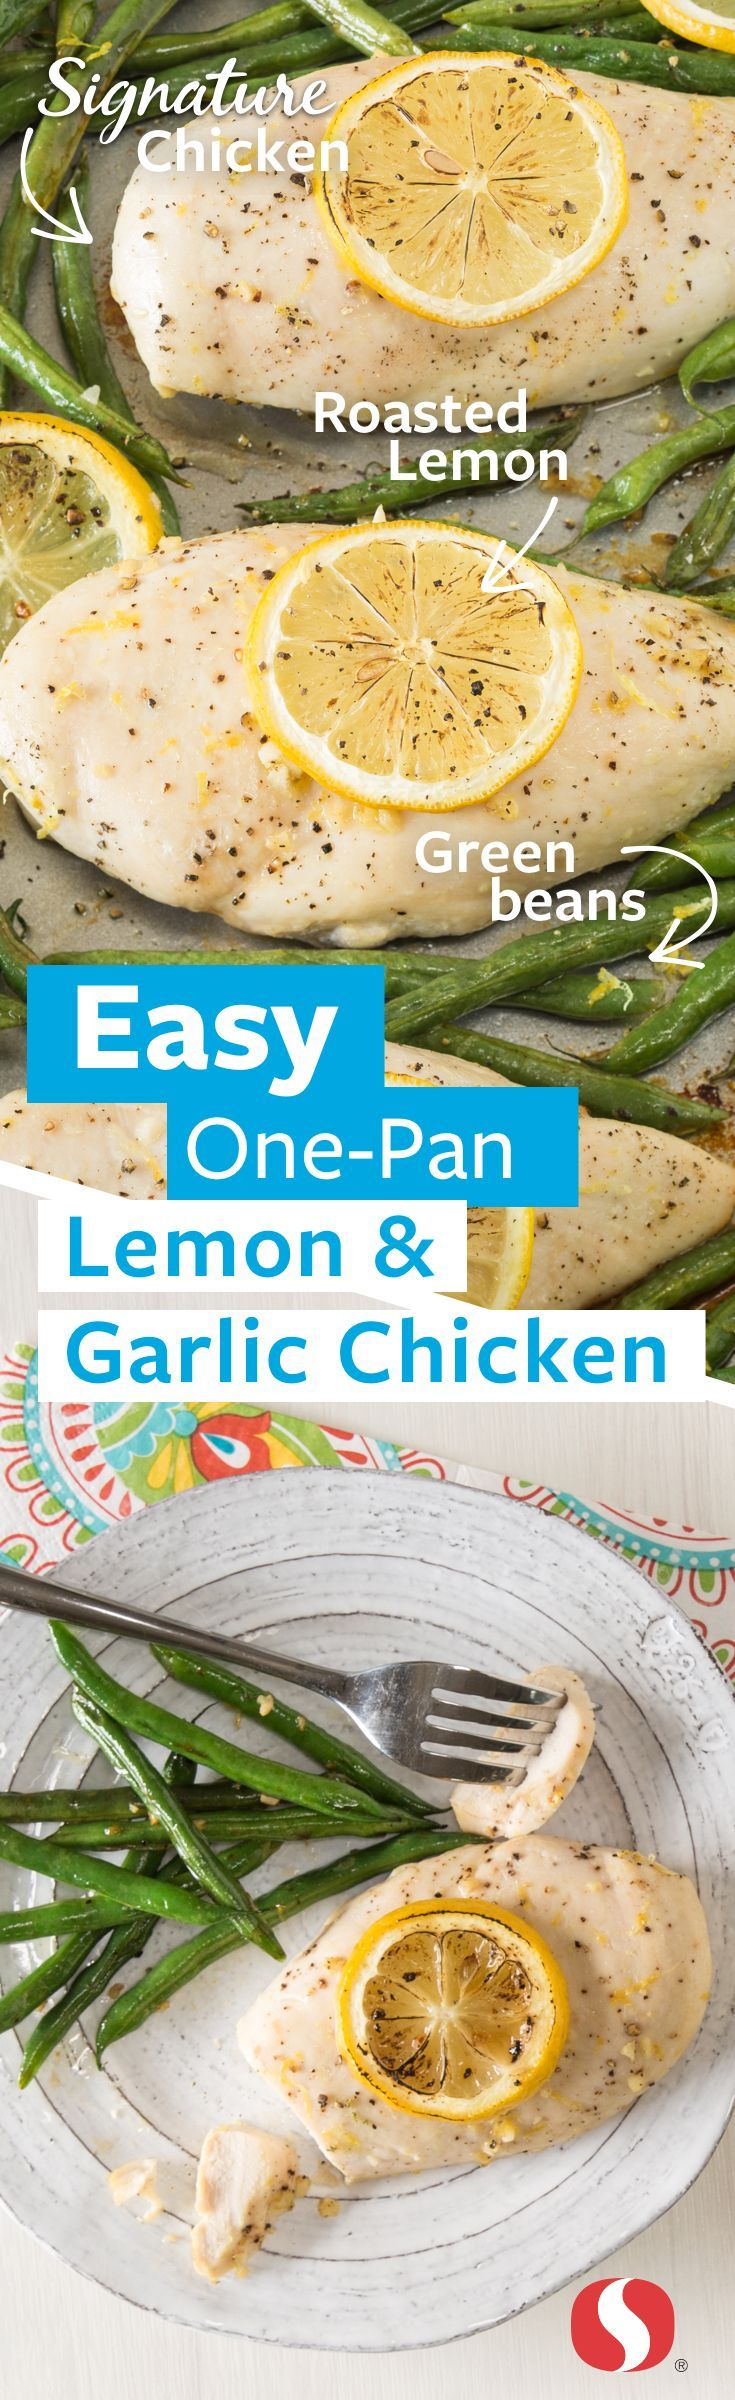 Lemon & Garlic Chicken—This one-pan twist on a classic is perfect for busy weeknights! Simplify dinner in just 40 minutes with 5 only ingredients. Featuring Signature Farms™ quality boneless, skinless chicken breasts.